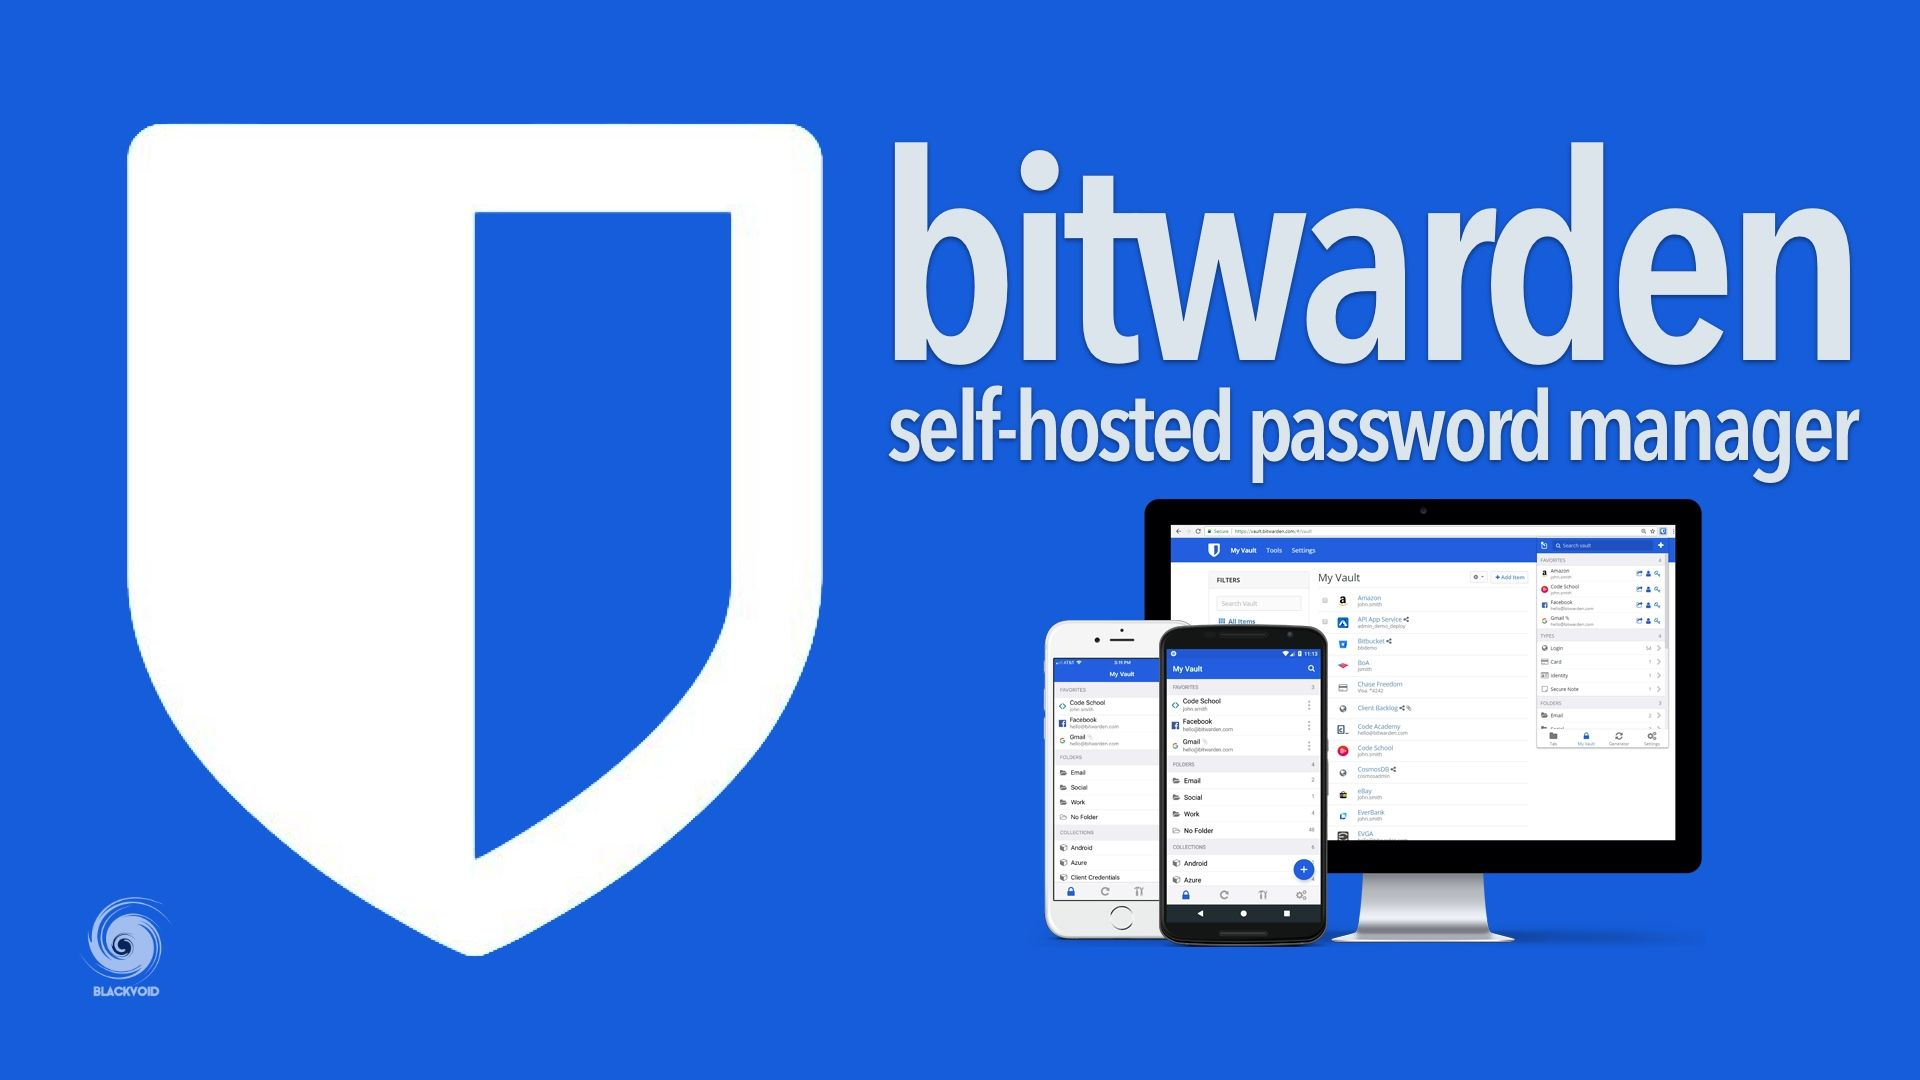 Bitwarden - a self-hosted password manager